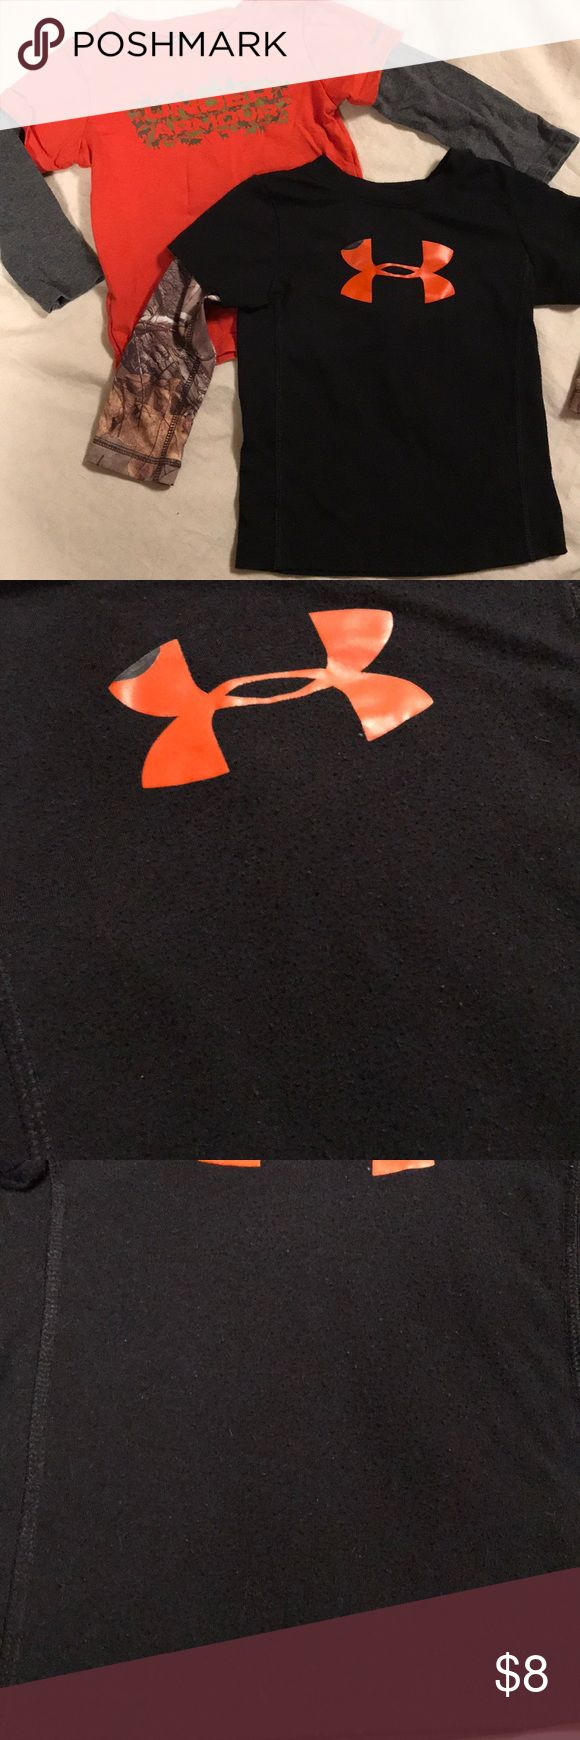 Set of Baby boy Under Armour Long sleeve Used condition, still have lots of life left.   Black one is piling on the black. Camo isn't. Front orange logo has peeled on the top left corner (pictured)   Orange- vinyl has peeled off on the back (pictured), front has cracked in a few places but not peeling.   Both are all season gear.   Bundle and save! Under Armour Shirts & Tops Tees - Long Sleeve